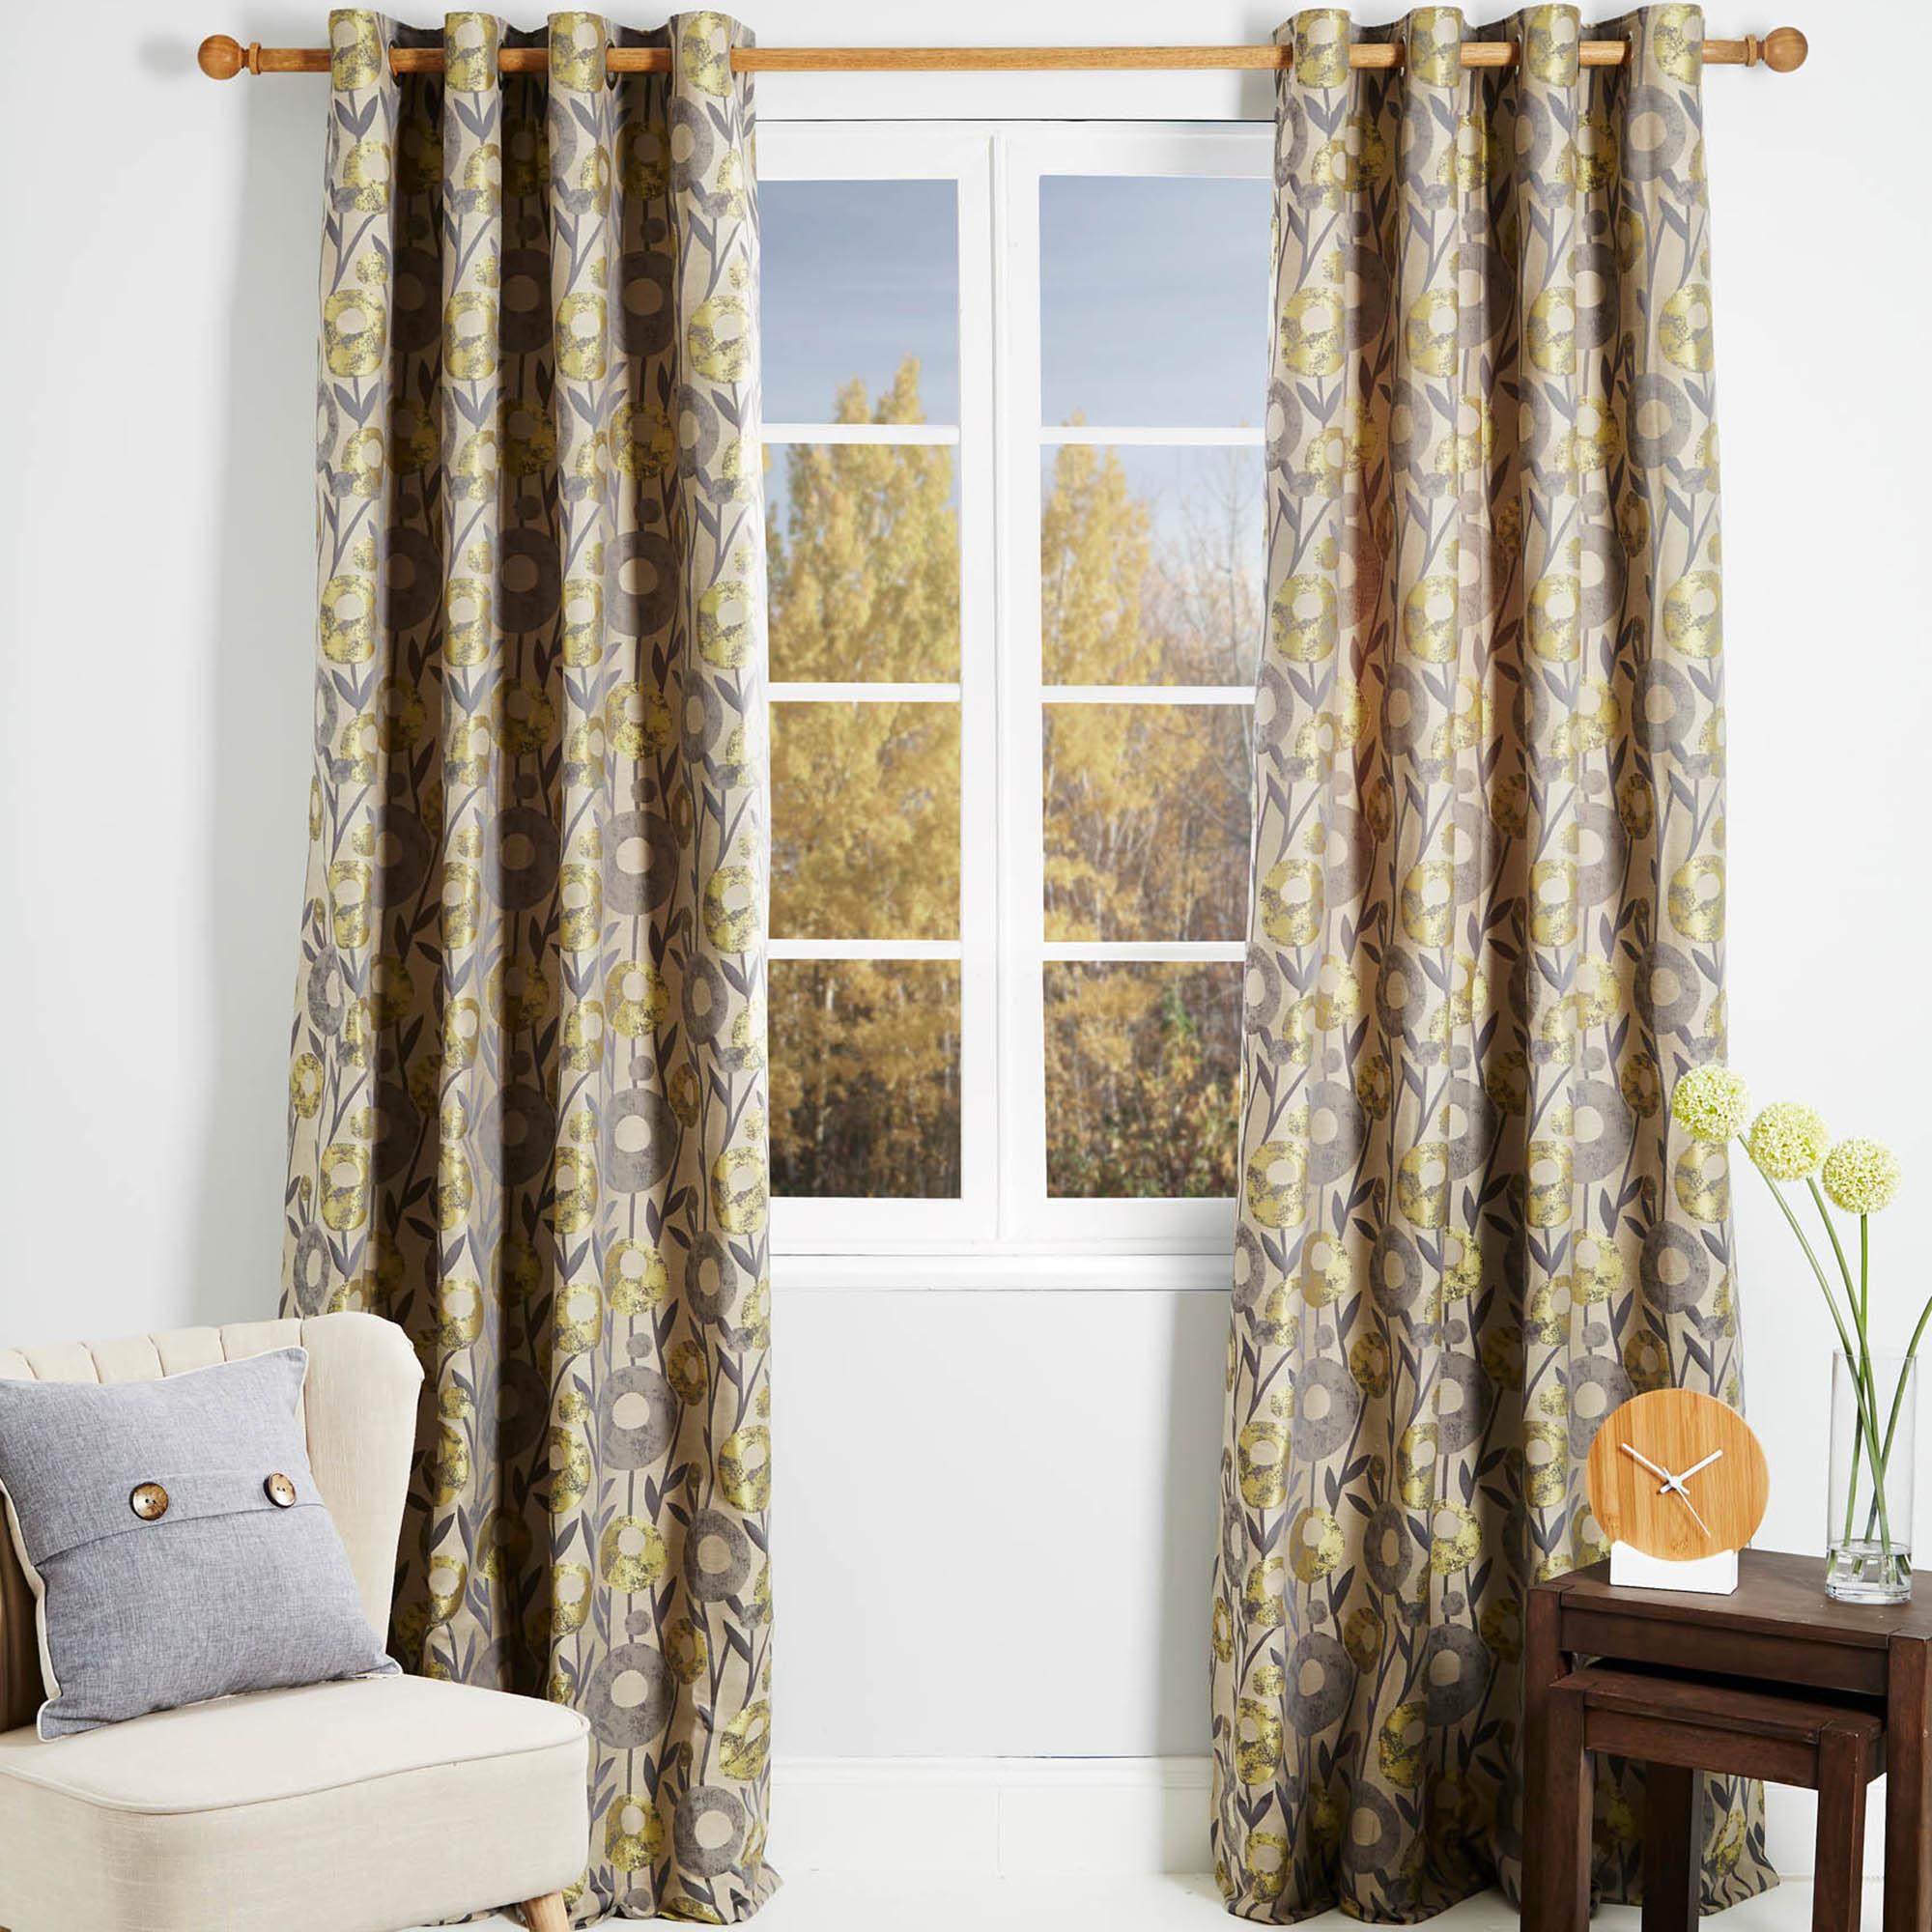 livorno yellow lined eyelet curtains. loz_new_web_exclusive MIHFYSD